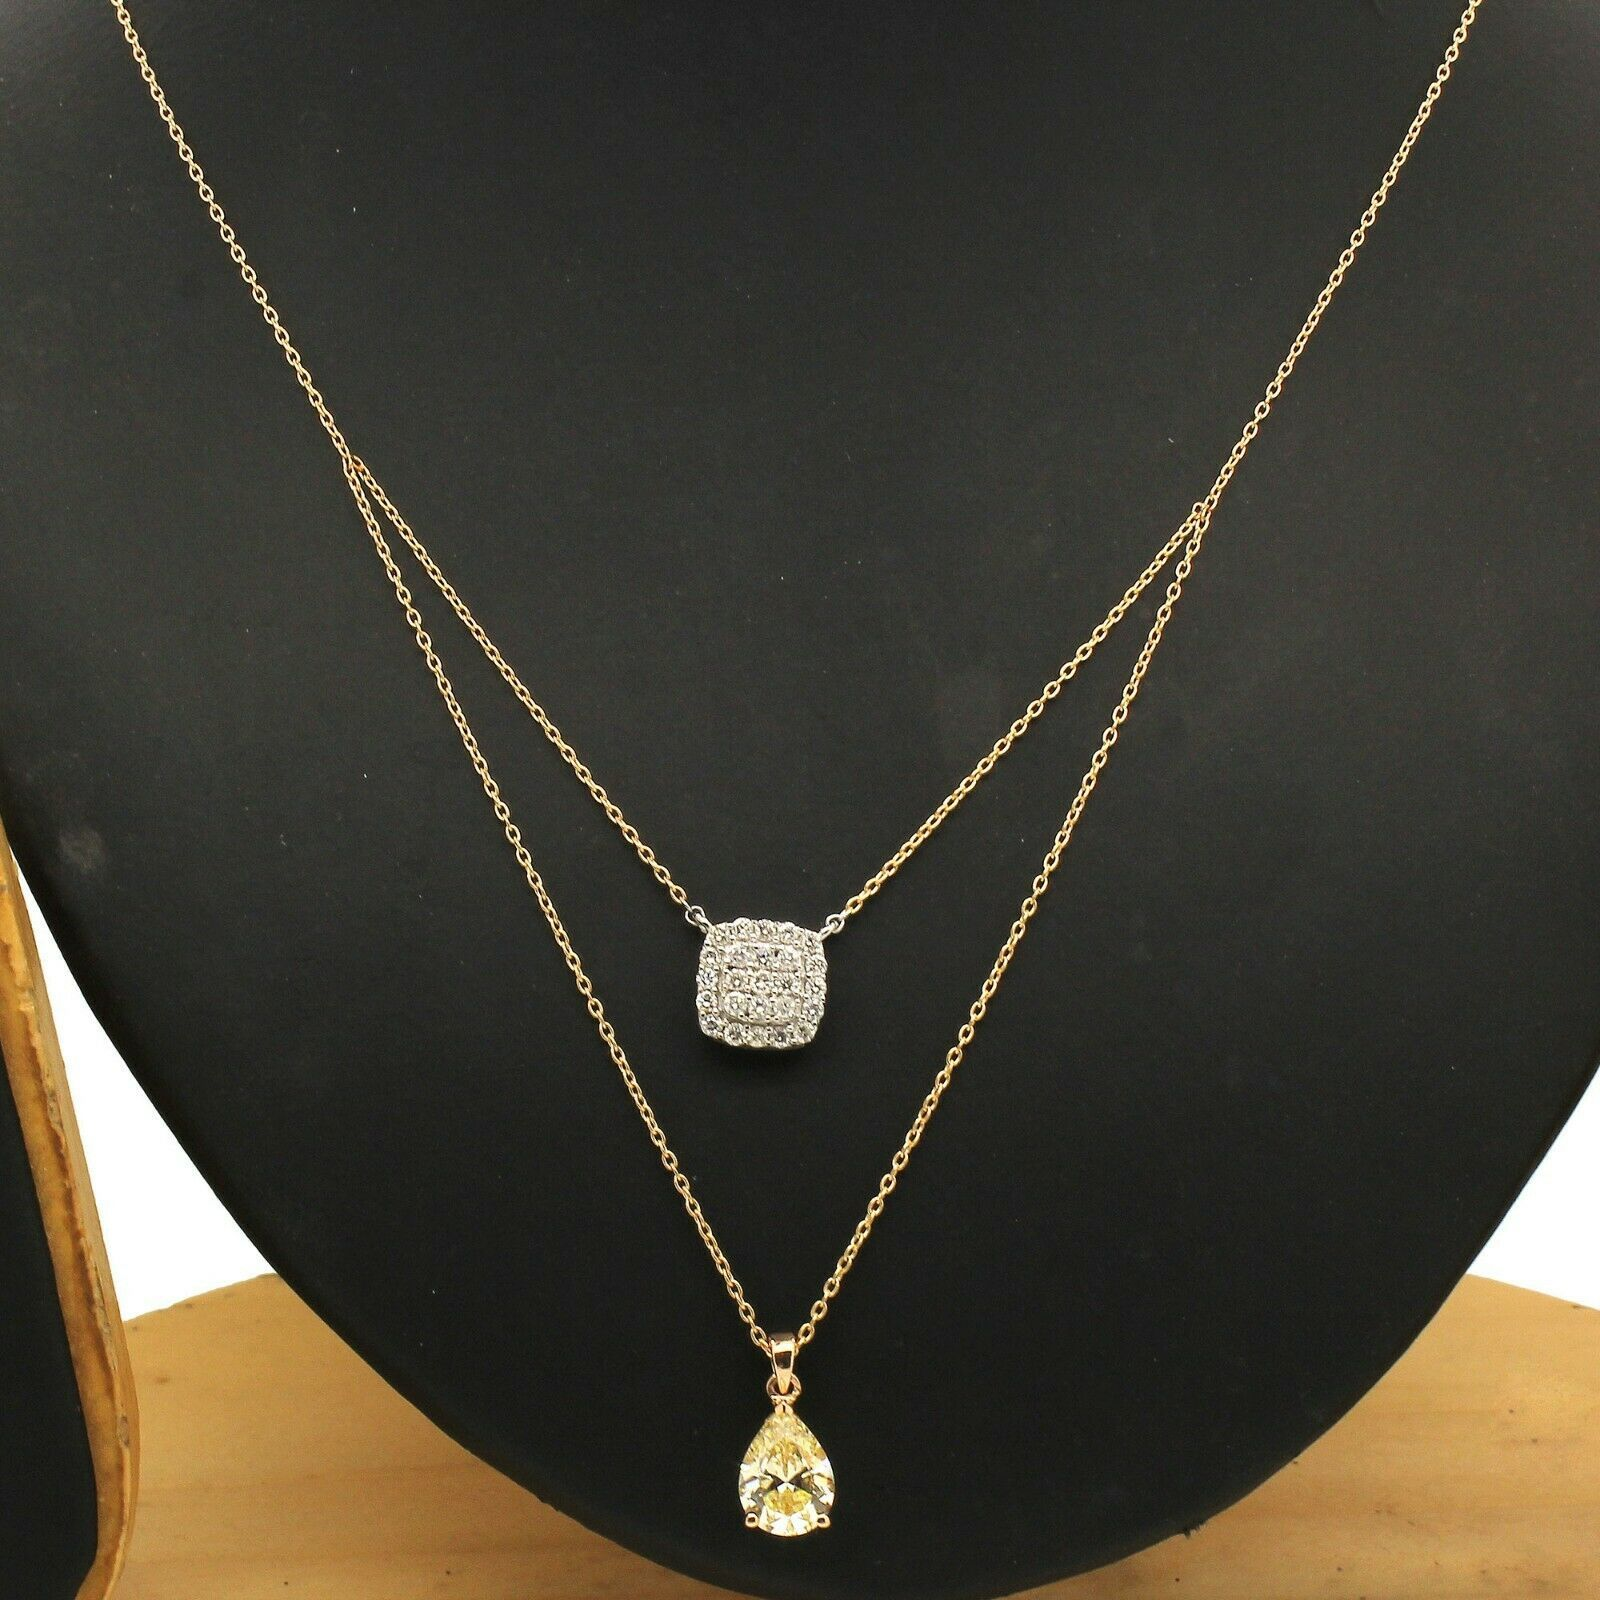 0.10 CT Round Cut simulated Diamond 4 Prong Solitaire Pendant Necklaces 10K Yellow Gold